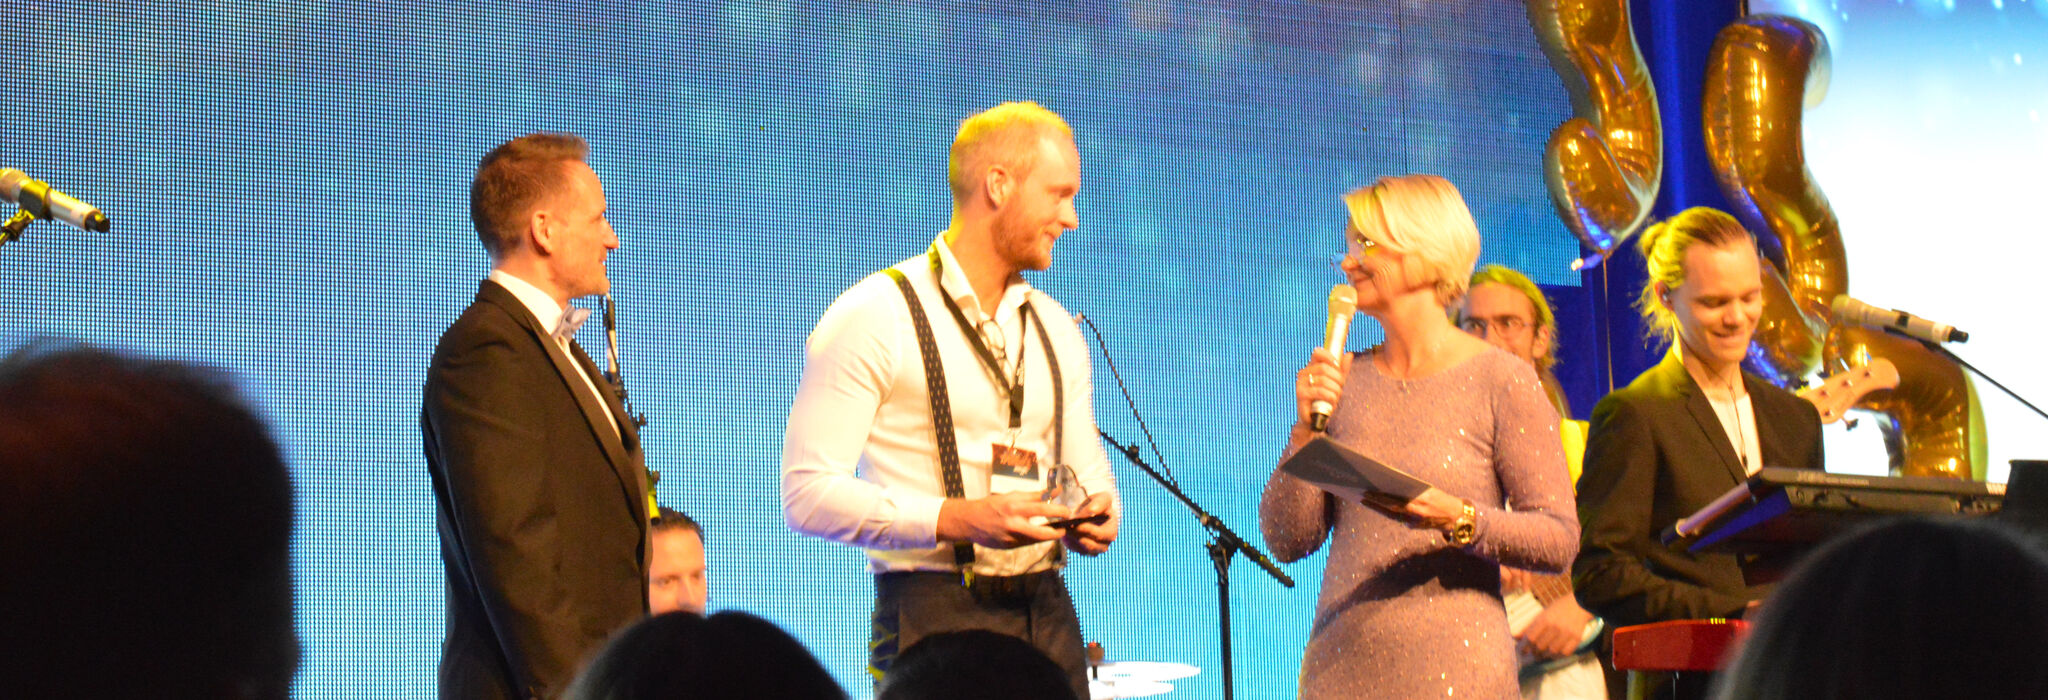 Sebastian Christensson, IS/IT Manager på TePe tar emot priset för Jeeves Innovation Award